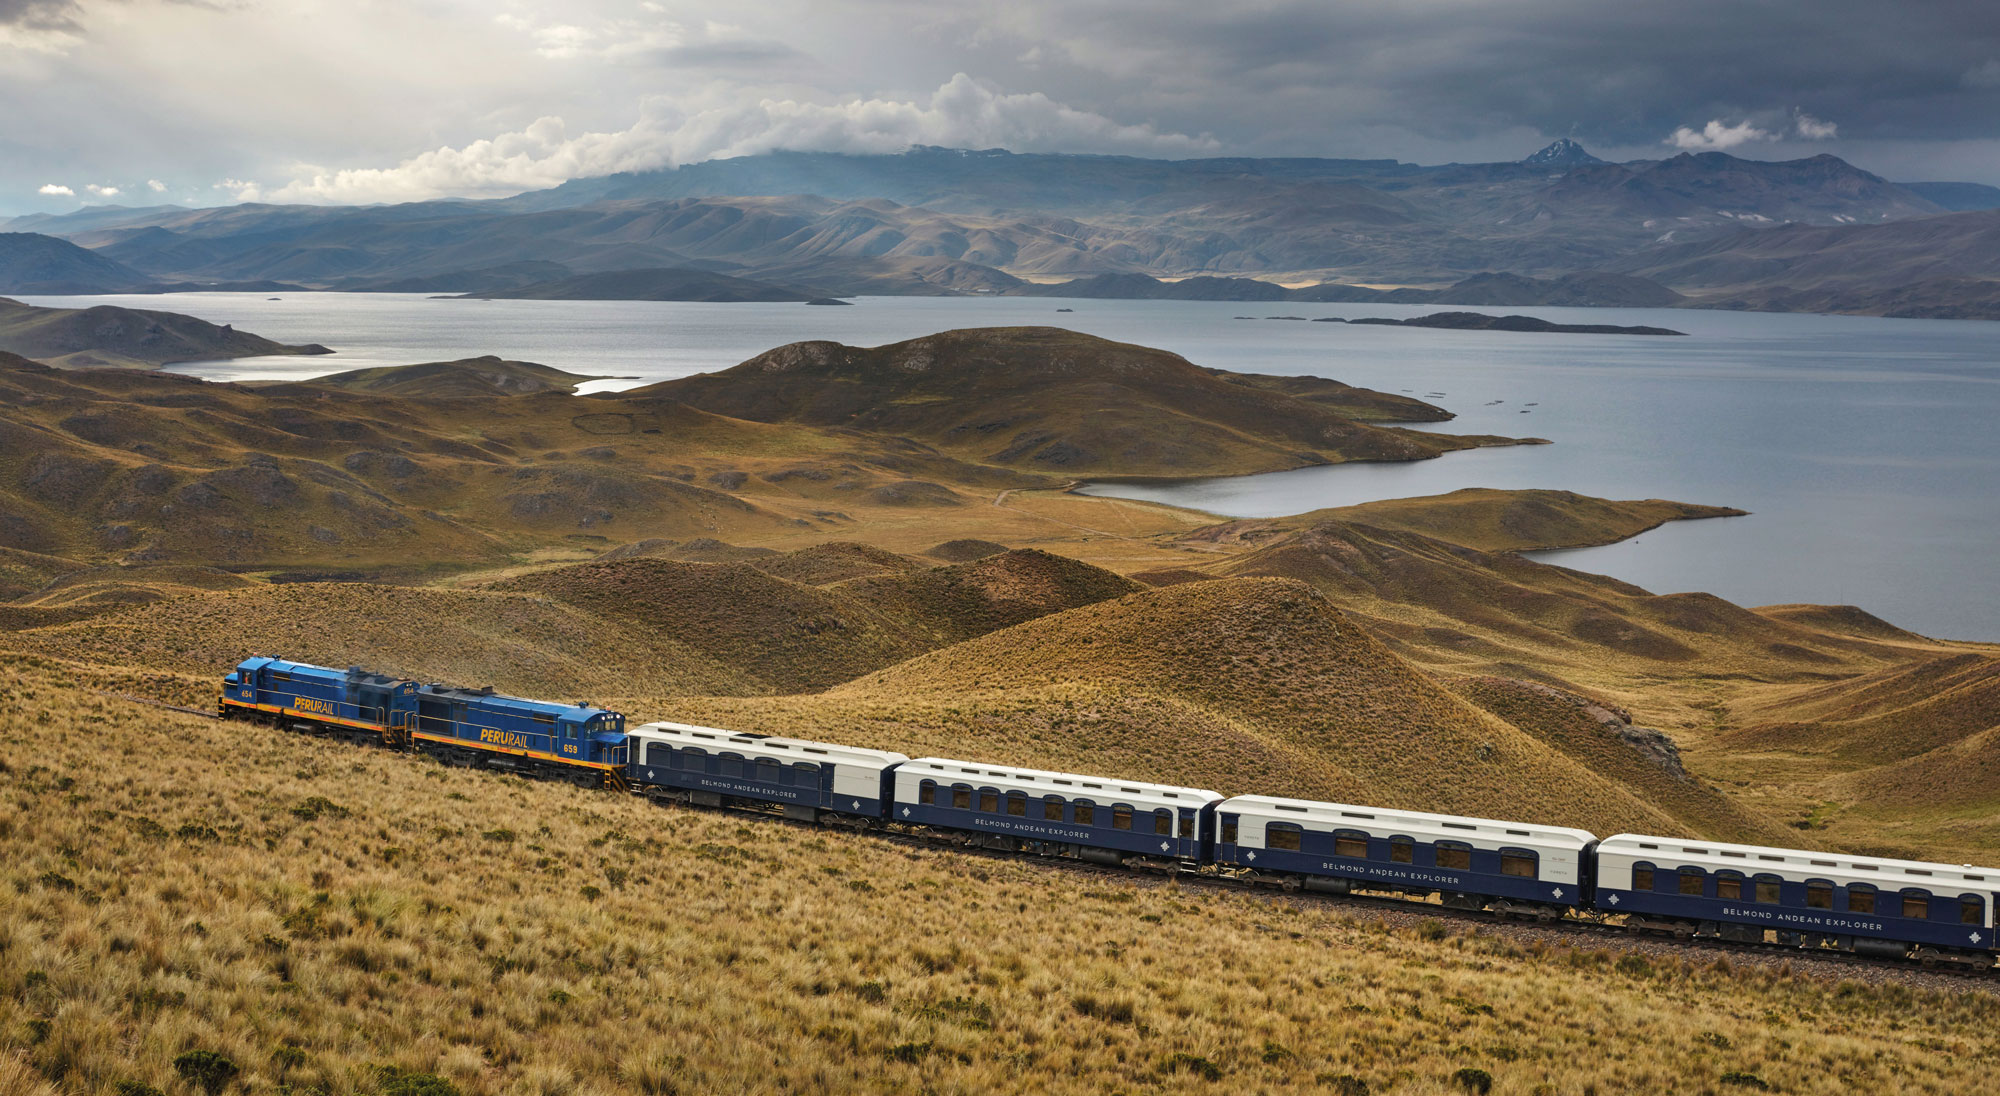 Andean Express Train